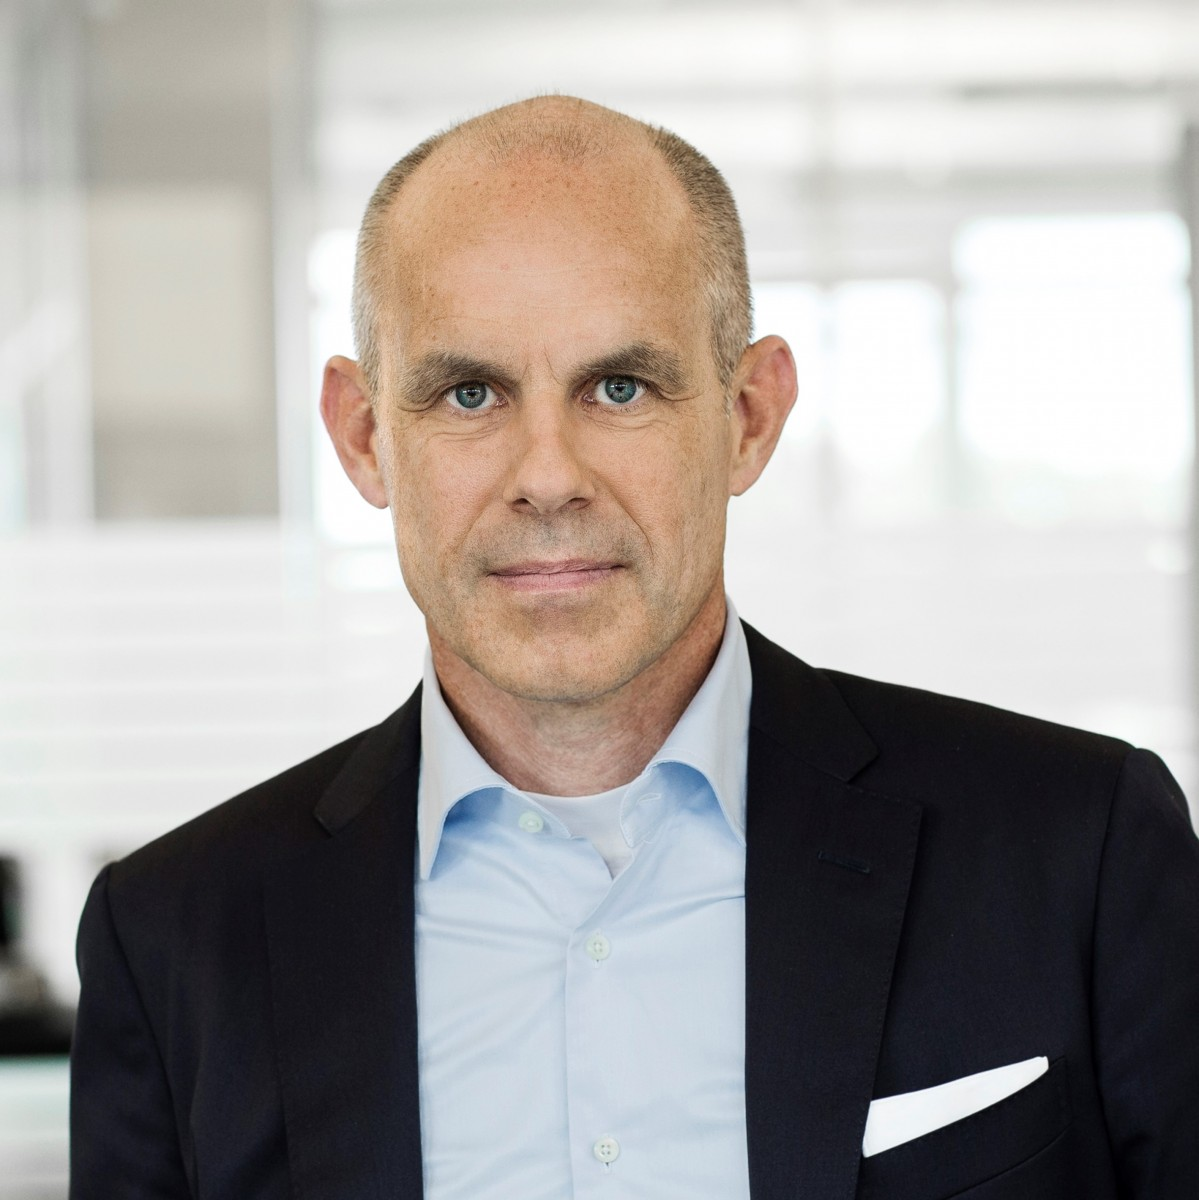 Jørgen Jensen, Chairman of the Board, The VELUX Group